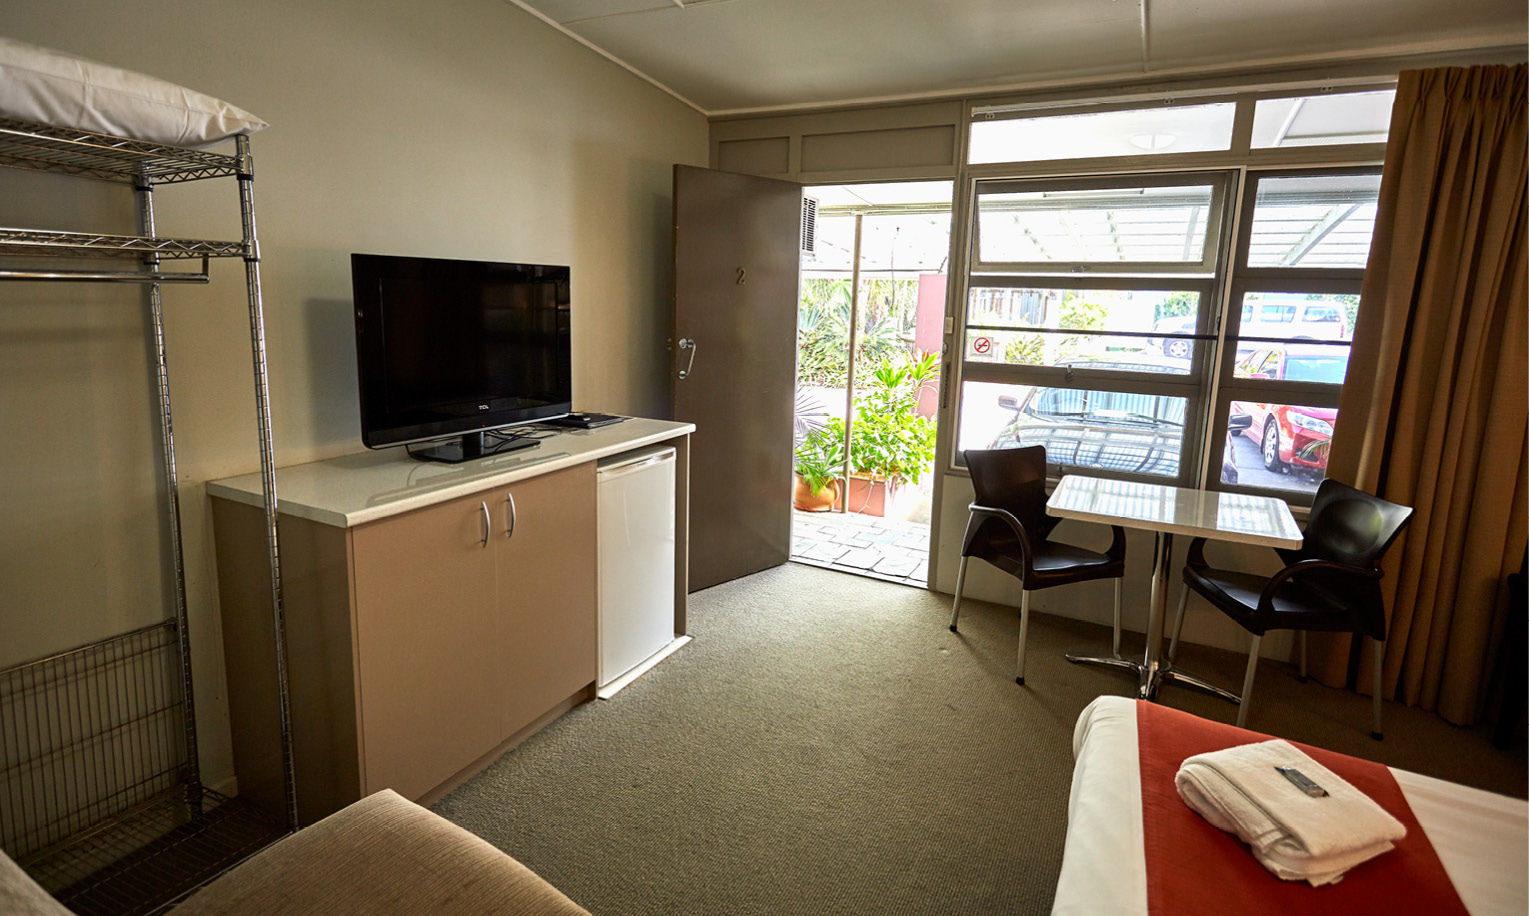 Anchorage Motel Affordable Convenient Accommodation Caloundra Anchorage Motel